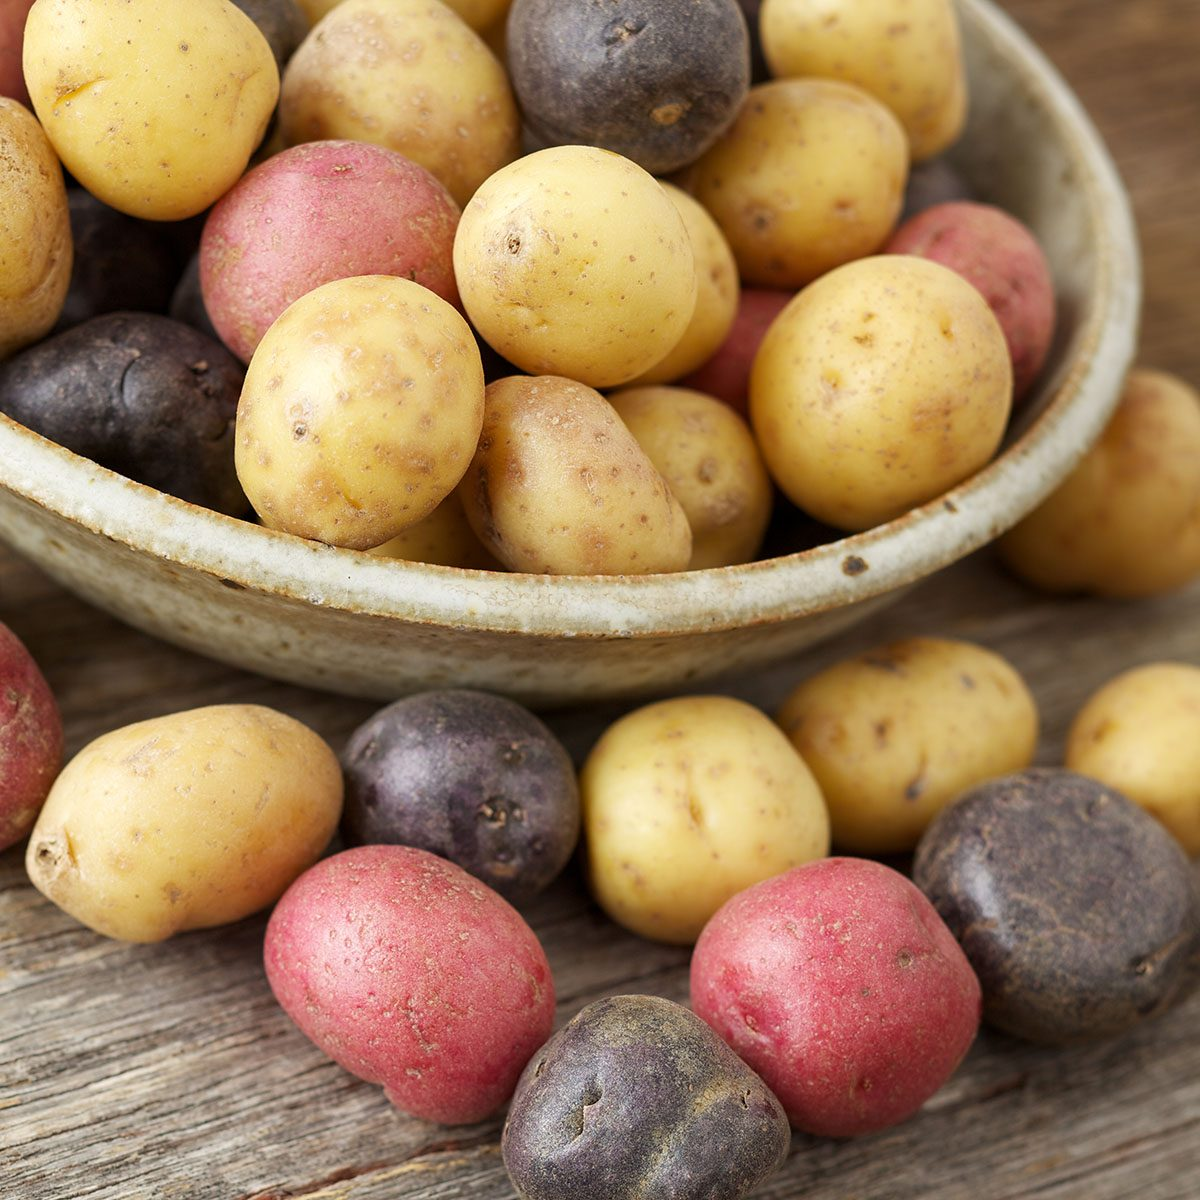 Natural light photo of raw multi-colored small raw potatoes on wood surfacePlease view more rustic food images here: